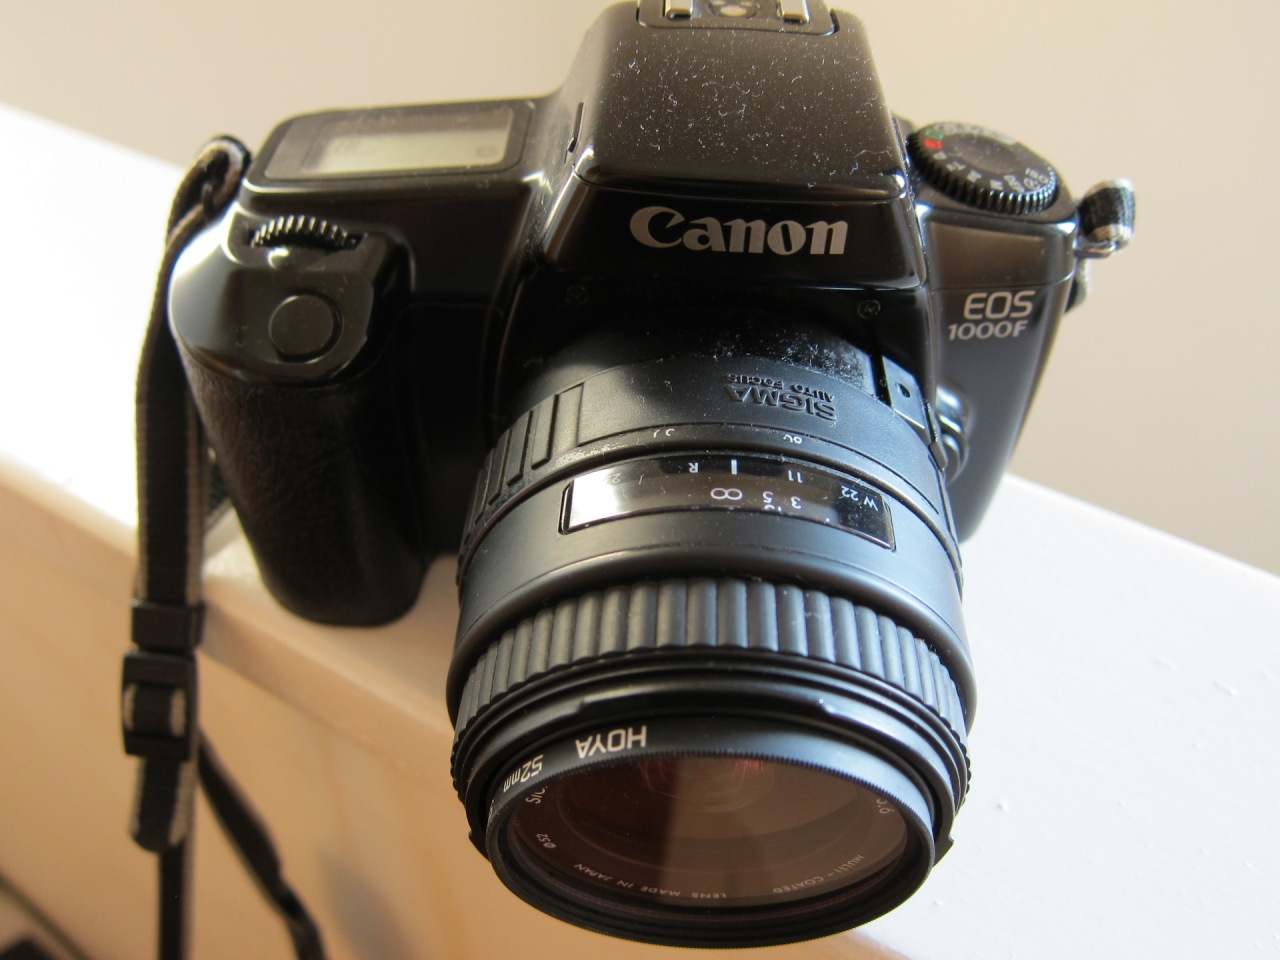 Return to Canon EOS 1000, but with an F